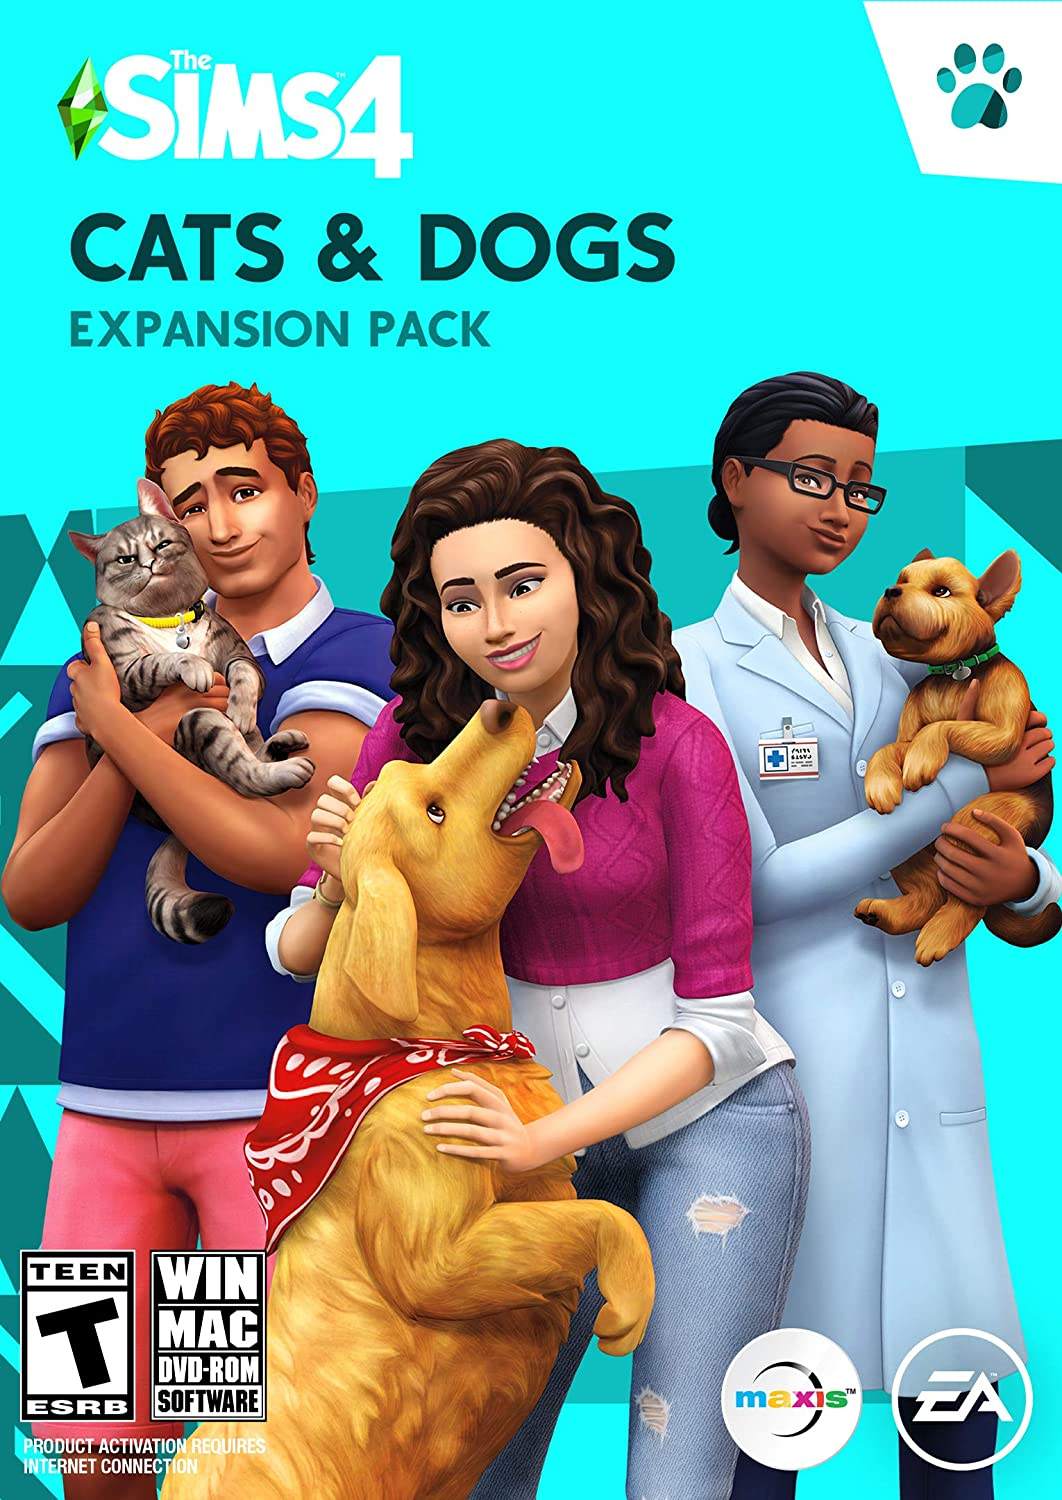 The Sims 4 Cats & Dogs - PC